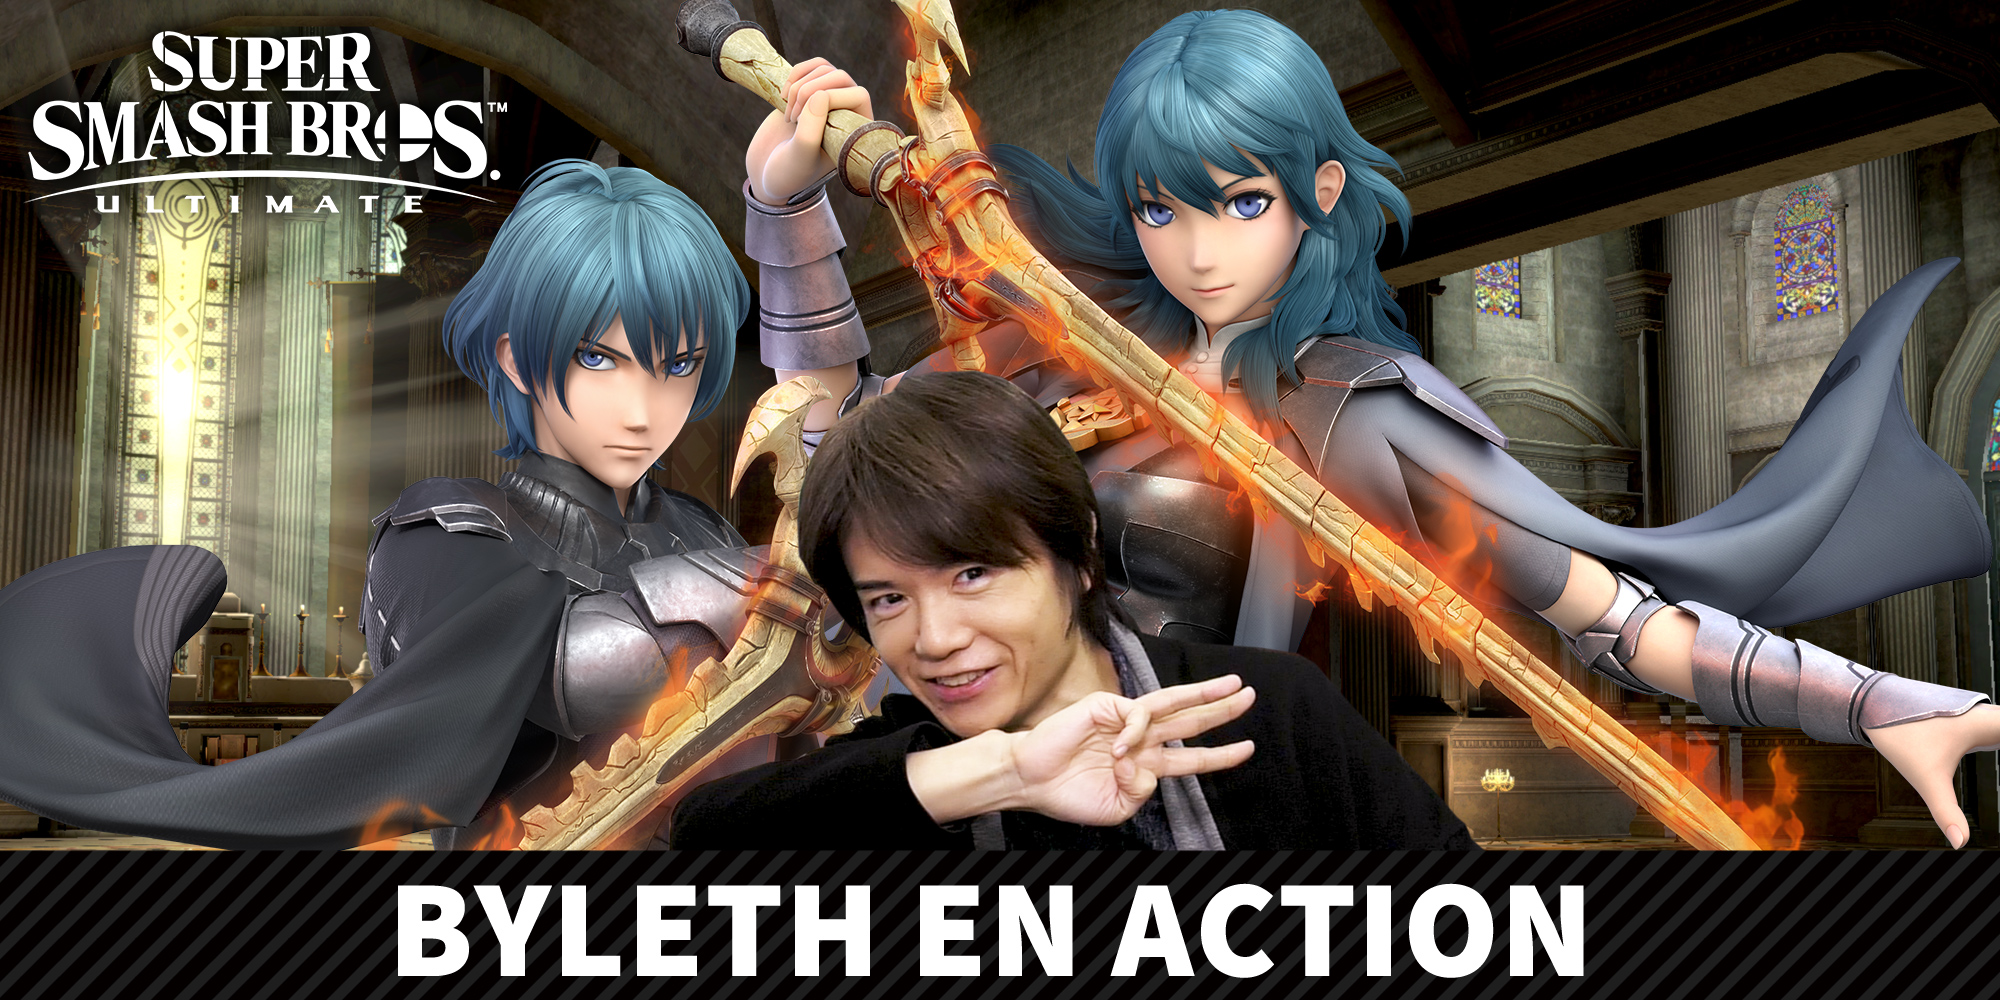 Super smash bros ultimate direct - byleth